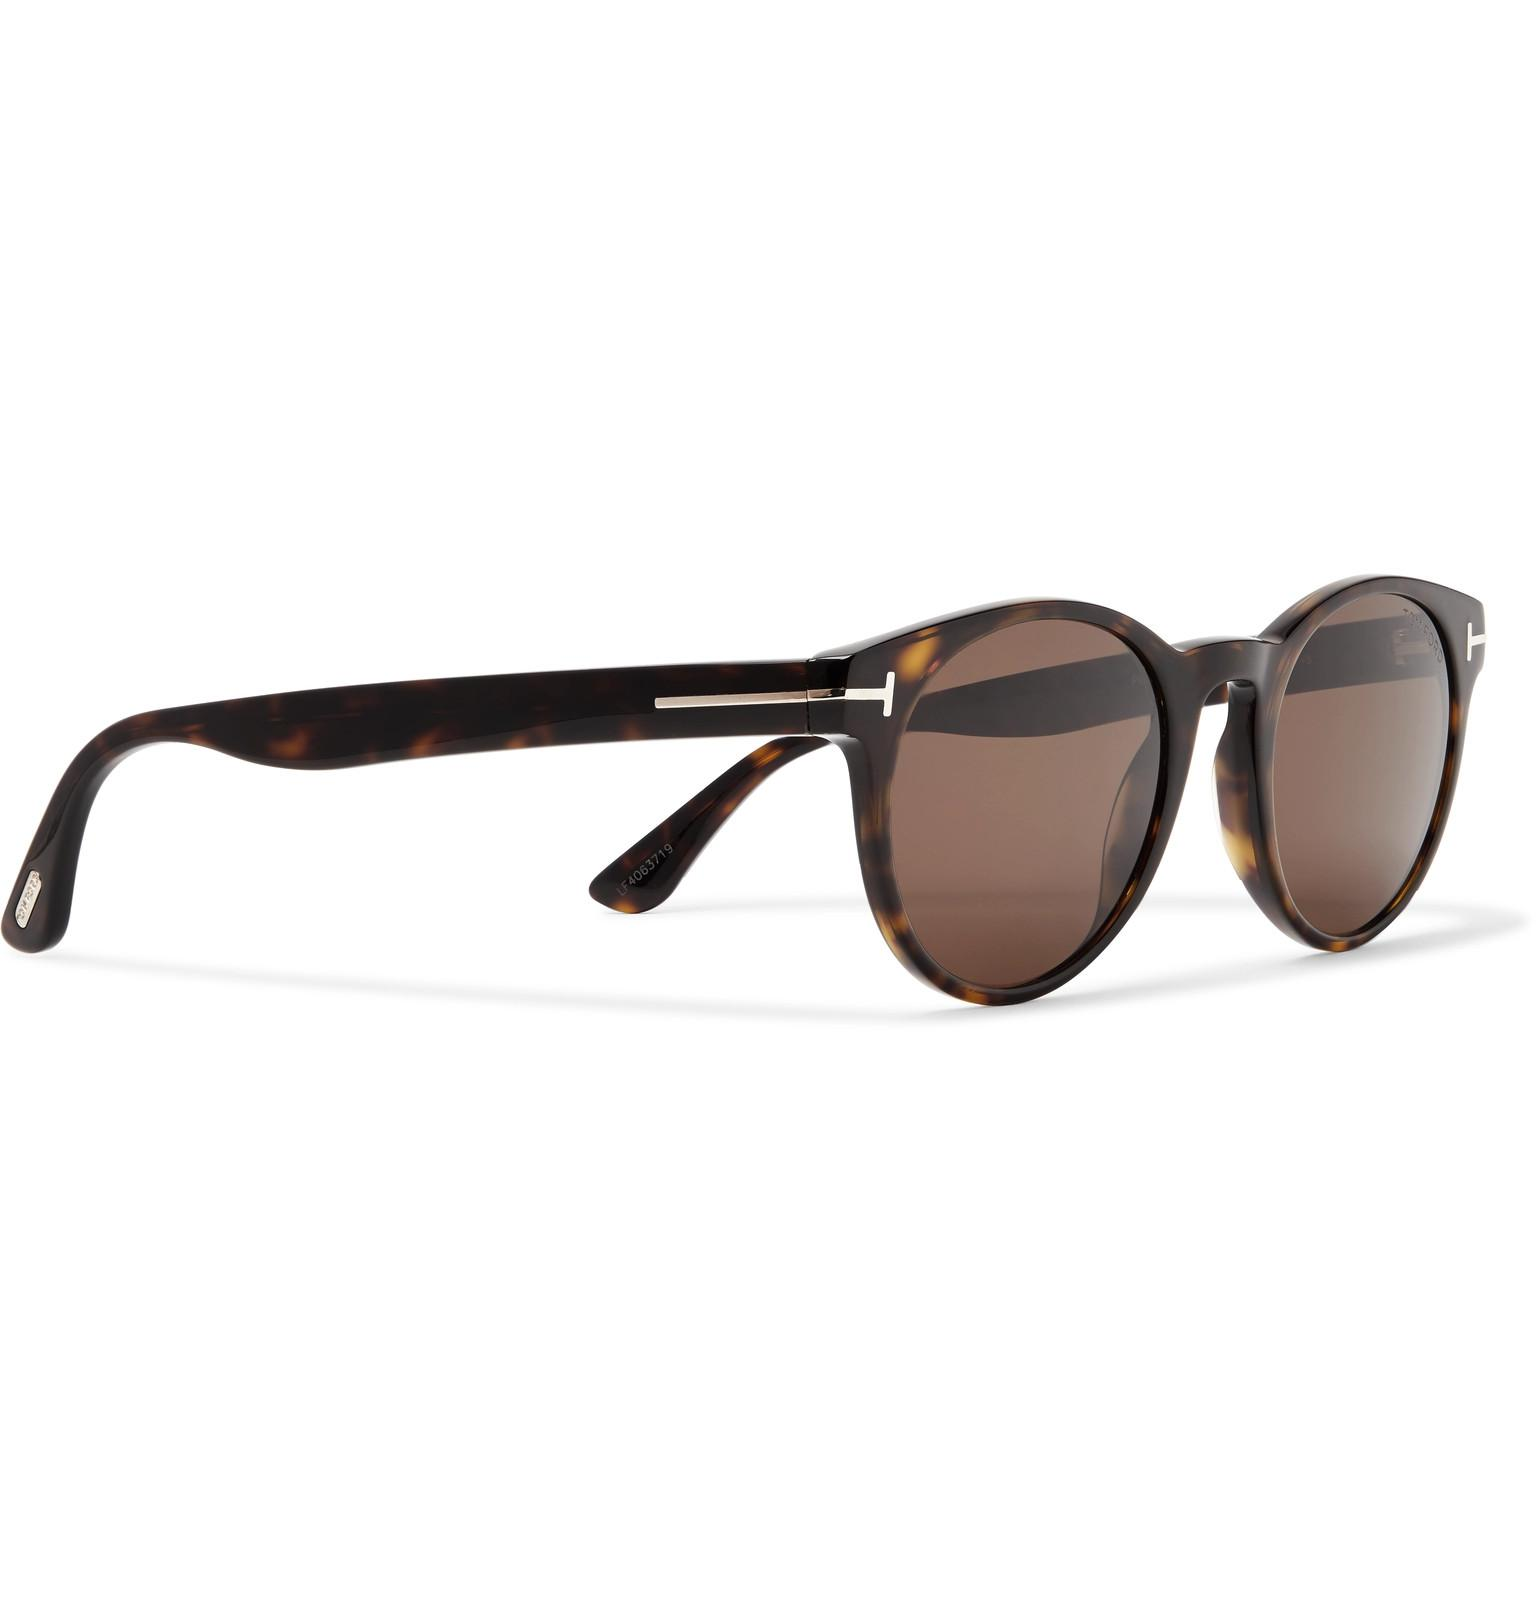 bf9f067a1e60a Tom Ford - Brown Palmer Round-frame Tortoiseshell Acetate Sunglasses for  Men - Lyst. View fullscreen